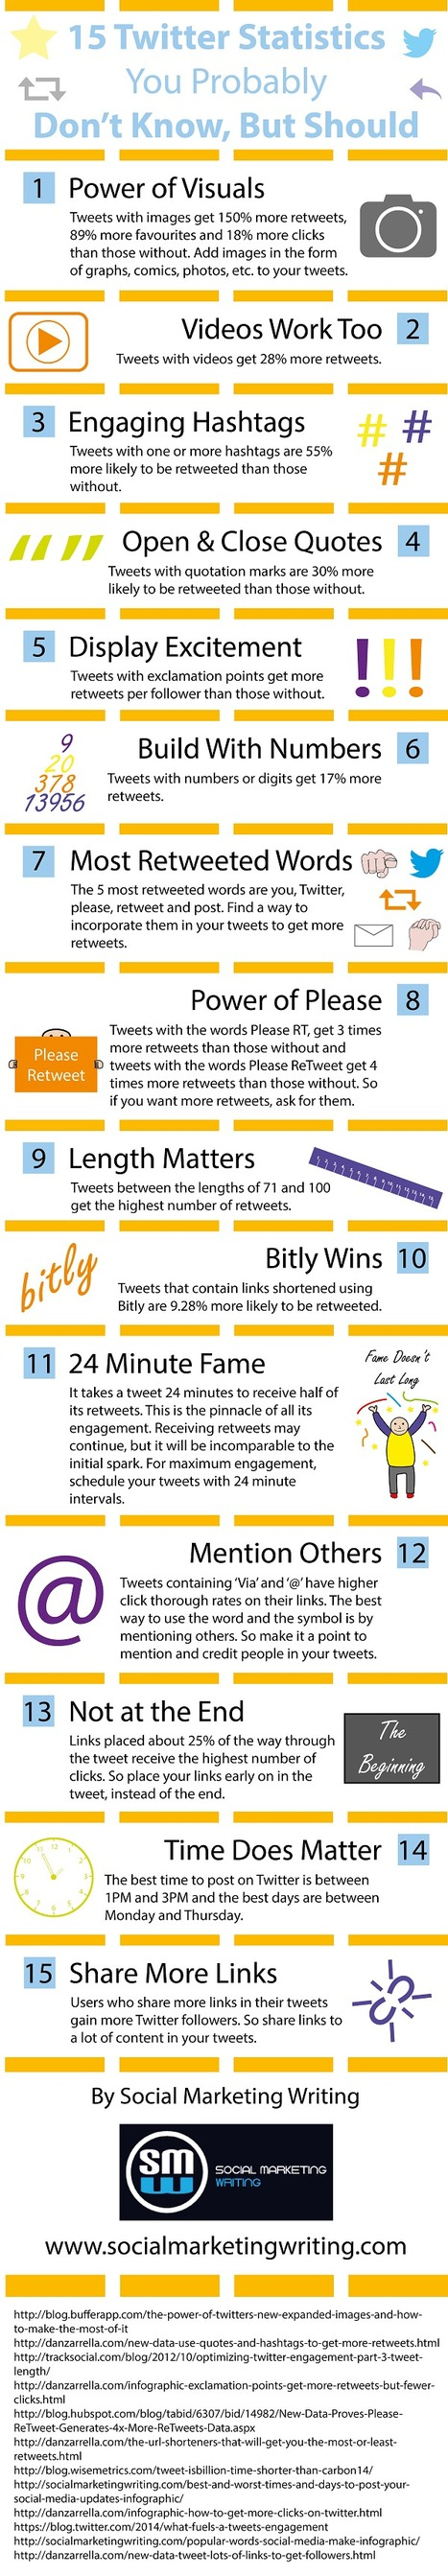 15 Twitter Statistics You Probably Don't Know, But Should [Infographic] | Everything Marketing You Can Think Of | Scoop.it